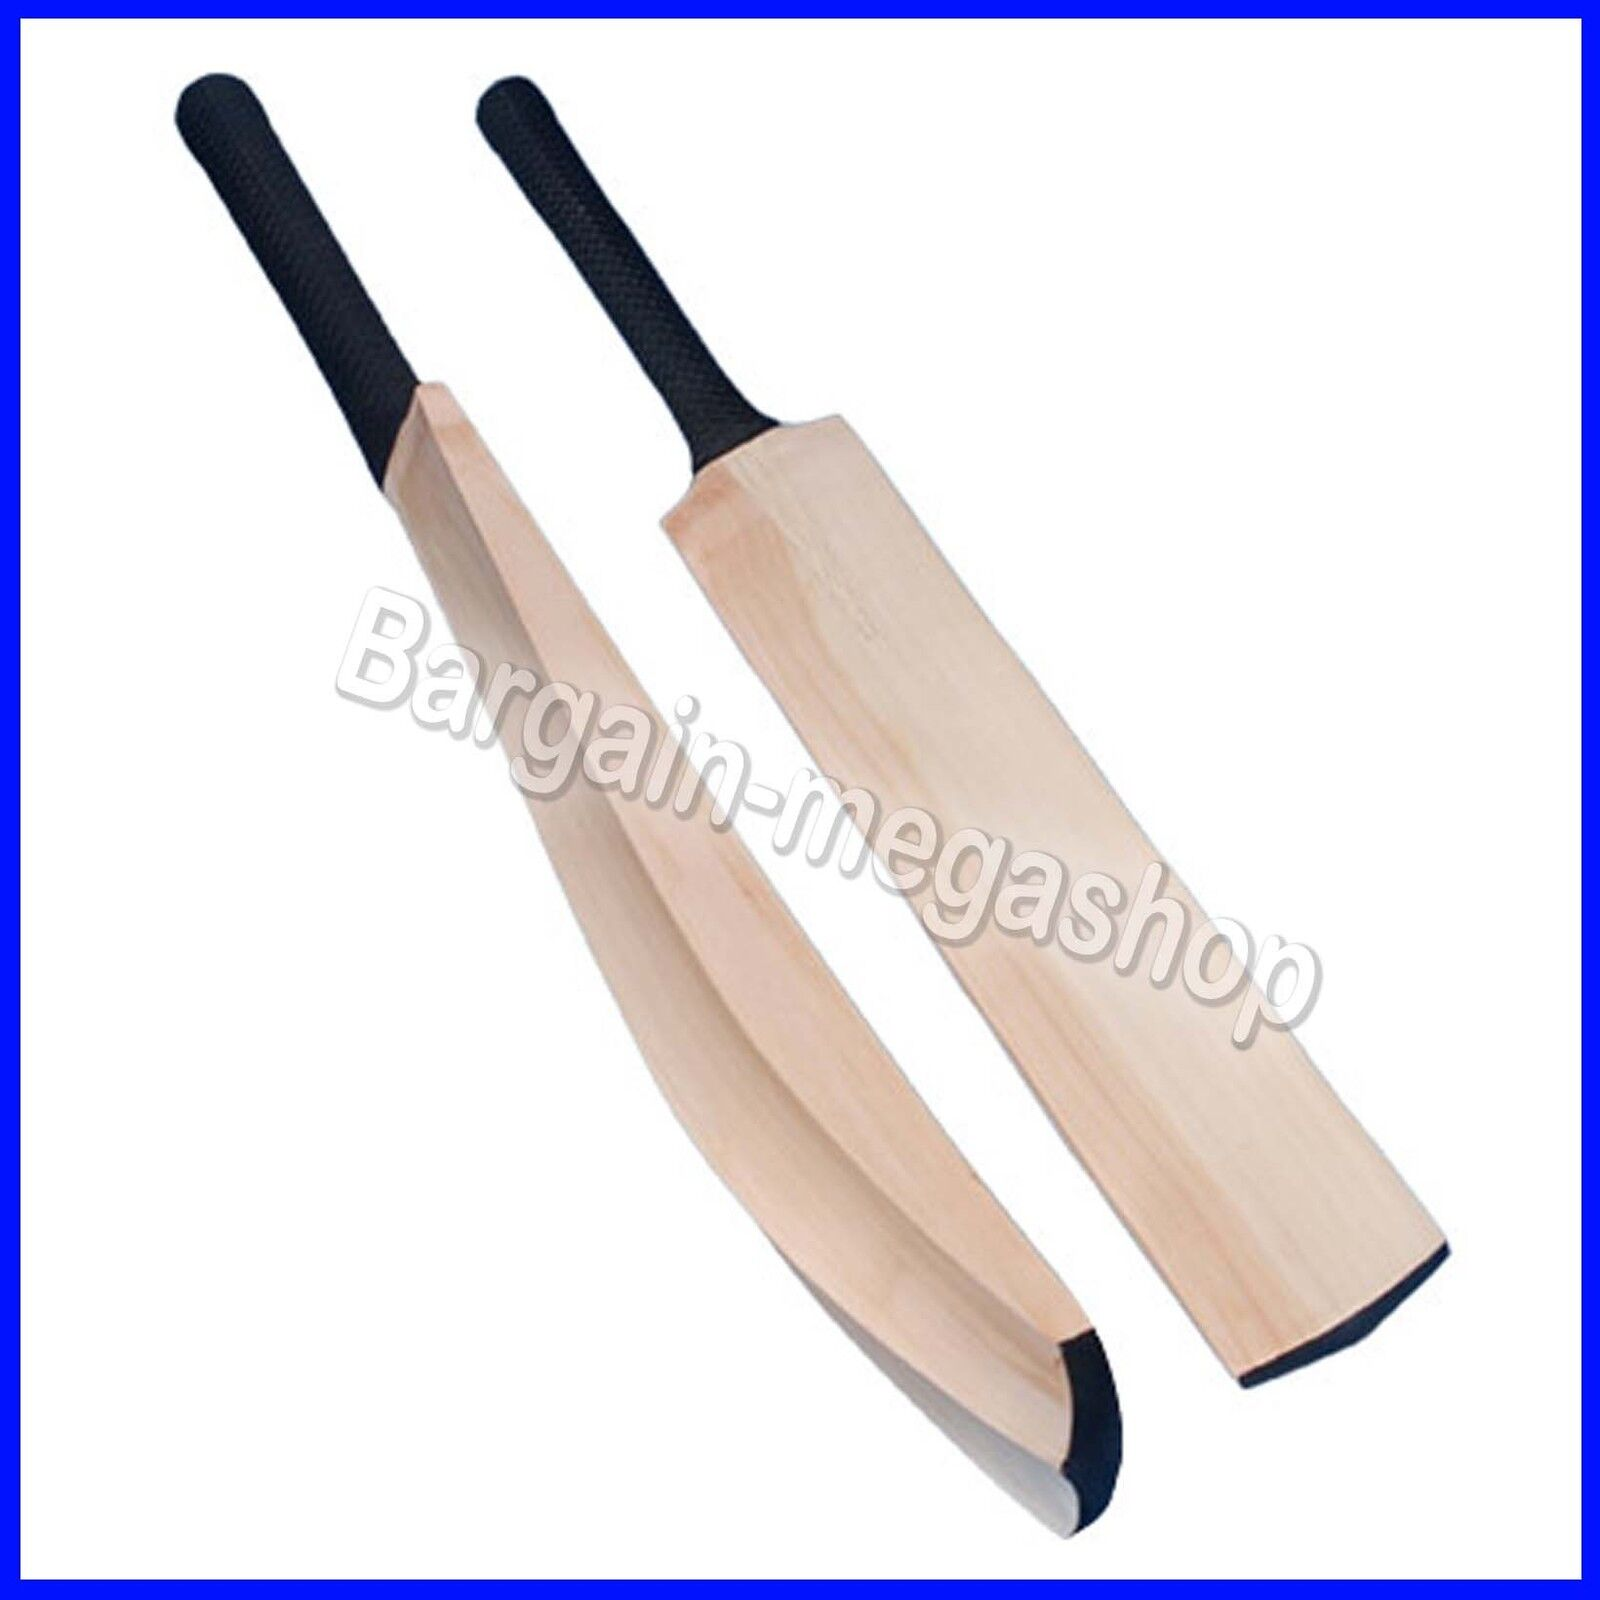 how to make a cricket bat by hand